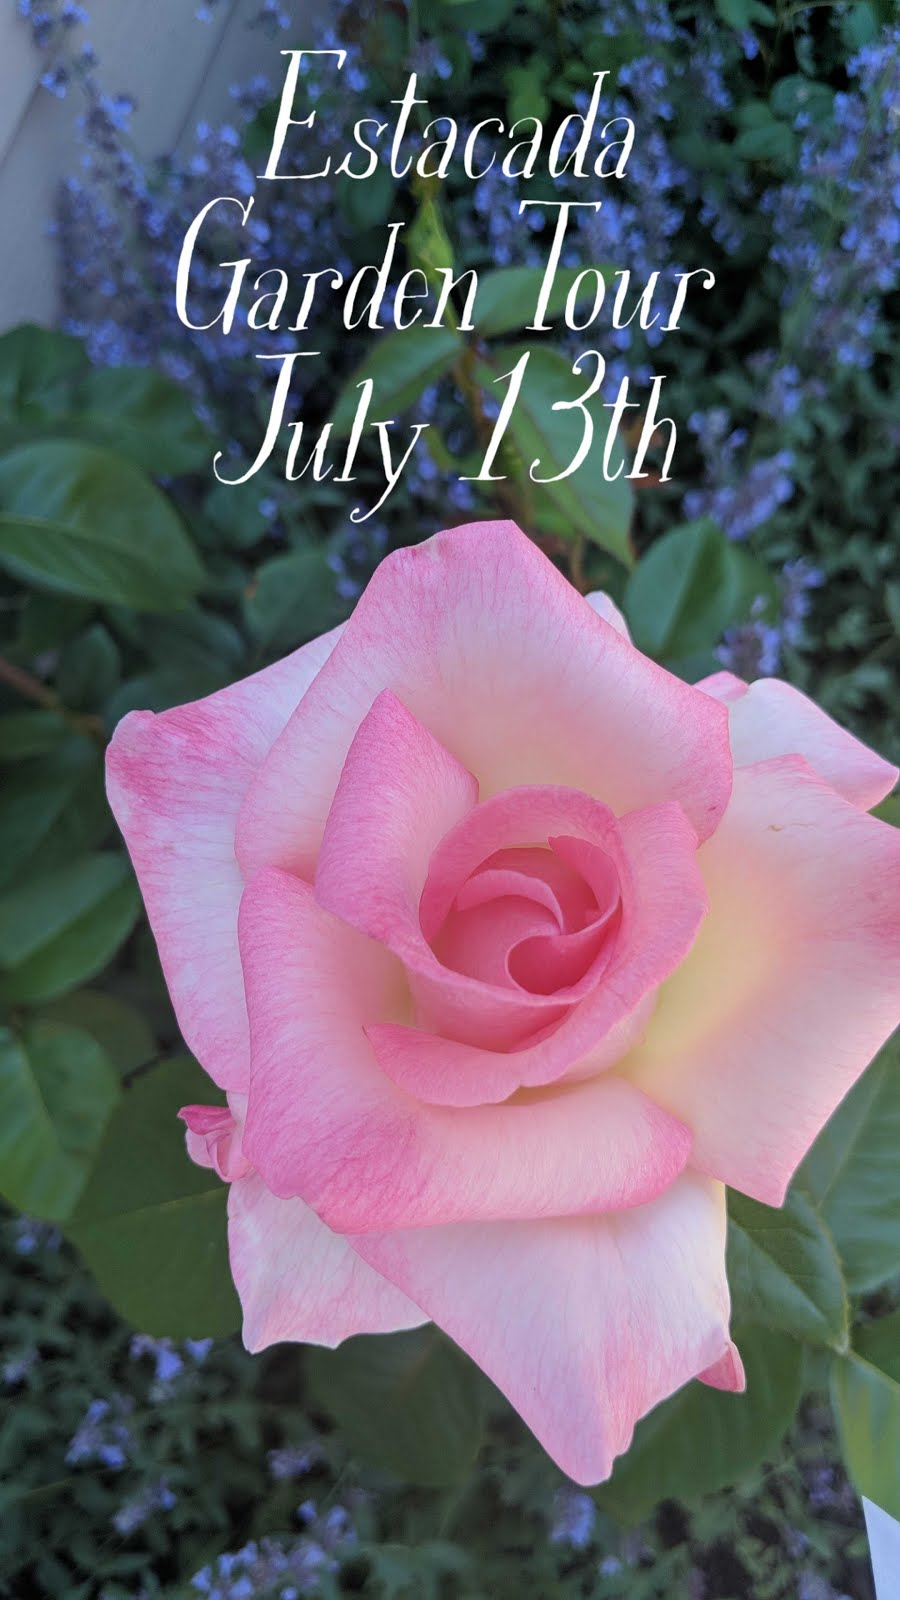 ESTACADA GARDEN TOUR - JULY 13TH   10AM - 4PM